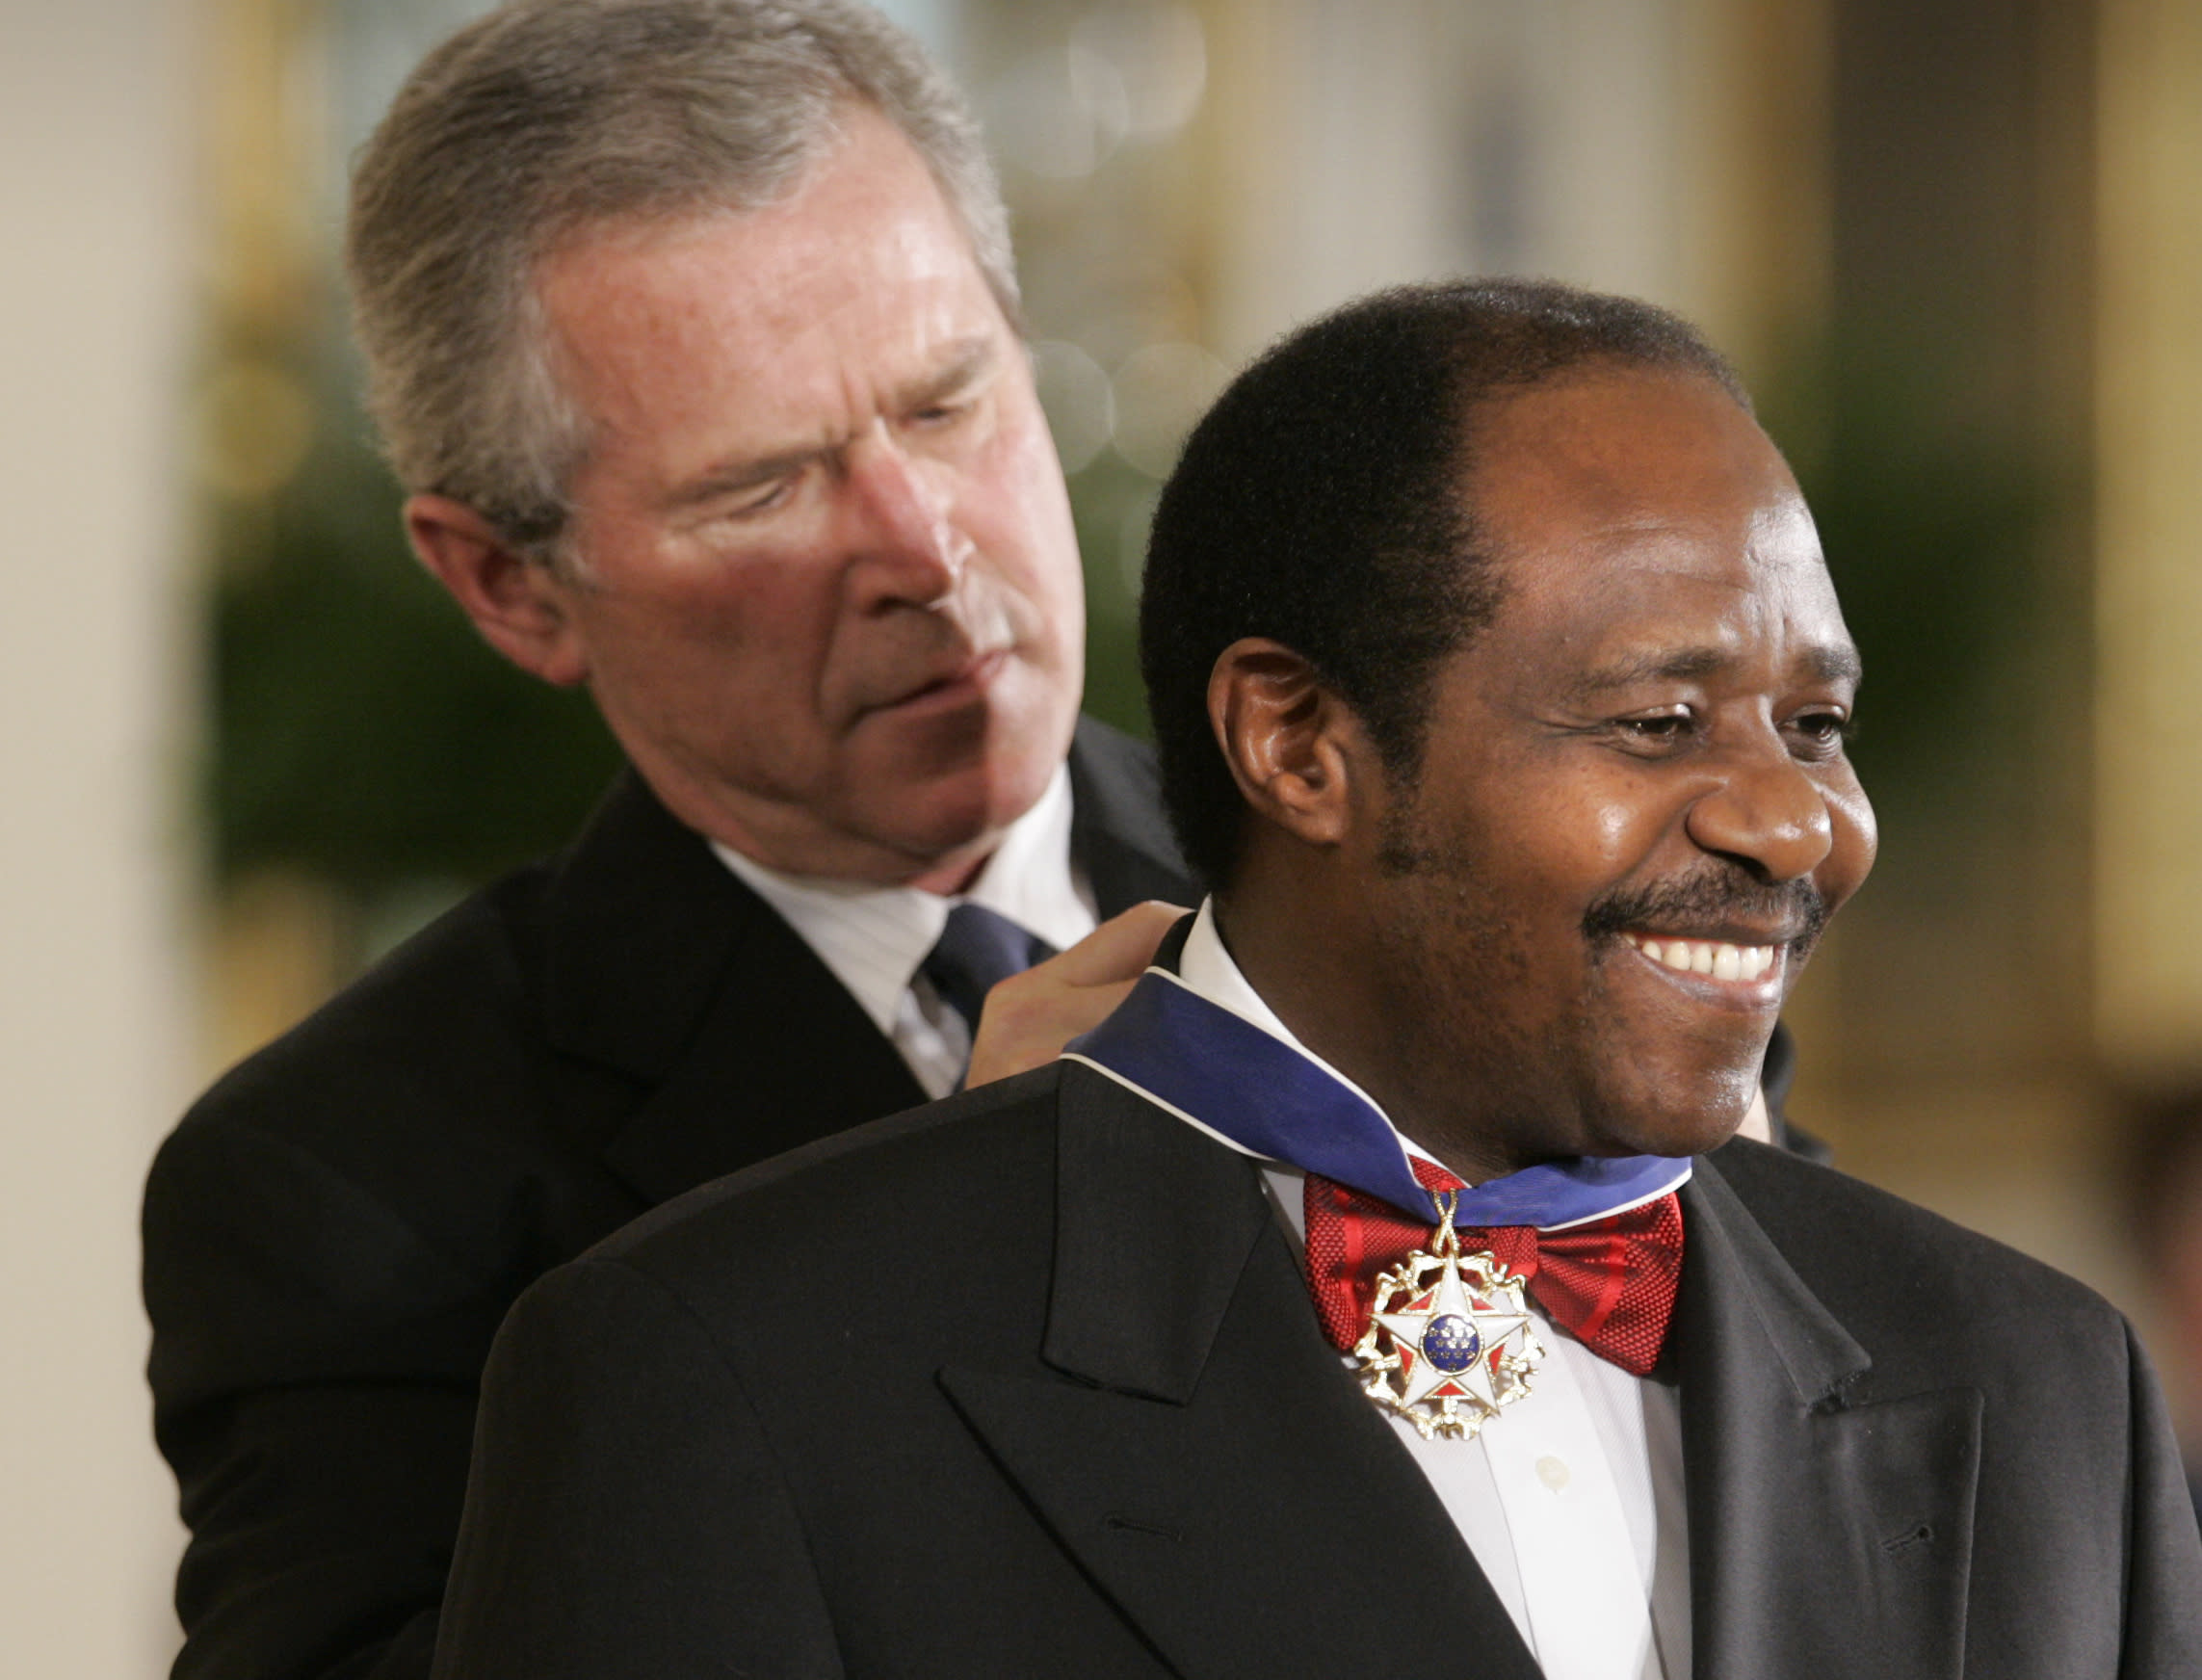 """FILE - In this Wednesday, Nov. 9, 2005 file photo, President Bush awards Paul Rusesabagina, who sheltered people at a hotel he managed during the 1994 Rwandan genocide, the Presidential Medal of Freedom Award in the East Room of the White House, in Washington. Rusesabagina, who was portrayed in the film """"Hotel Rwanda"""" as a hero who saved the lives of more than 1,200 people from the country's 1994 genocide, and is a well-known critic of President Paul Kagame, has been arrested by the Rwandan government on terror charges, police announced on Monday, Aug. 31, 2020. (AP Photo/Lawrence Jackson, File)"""